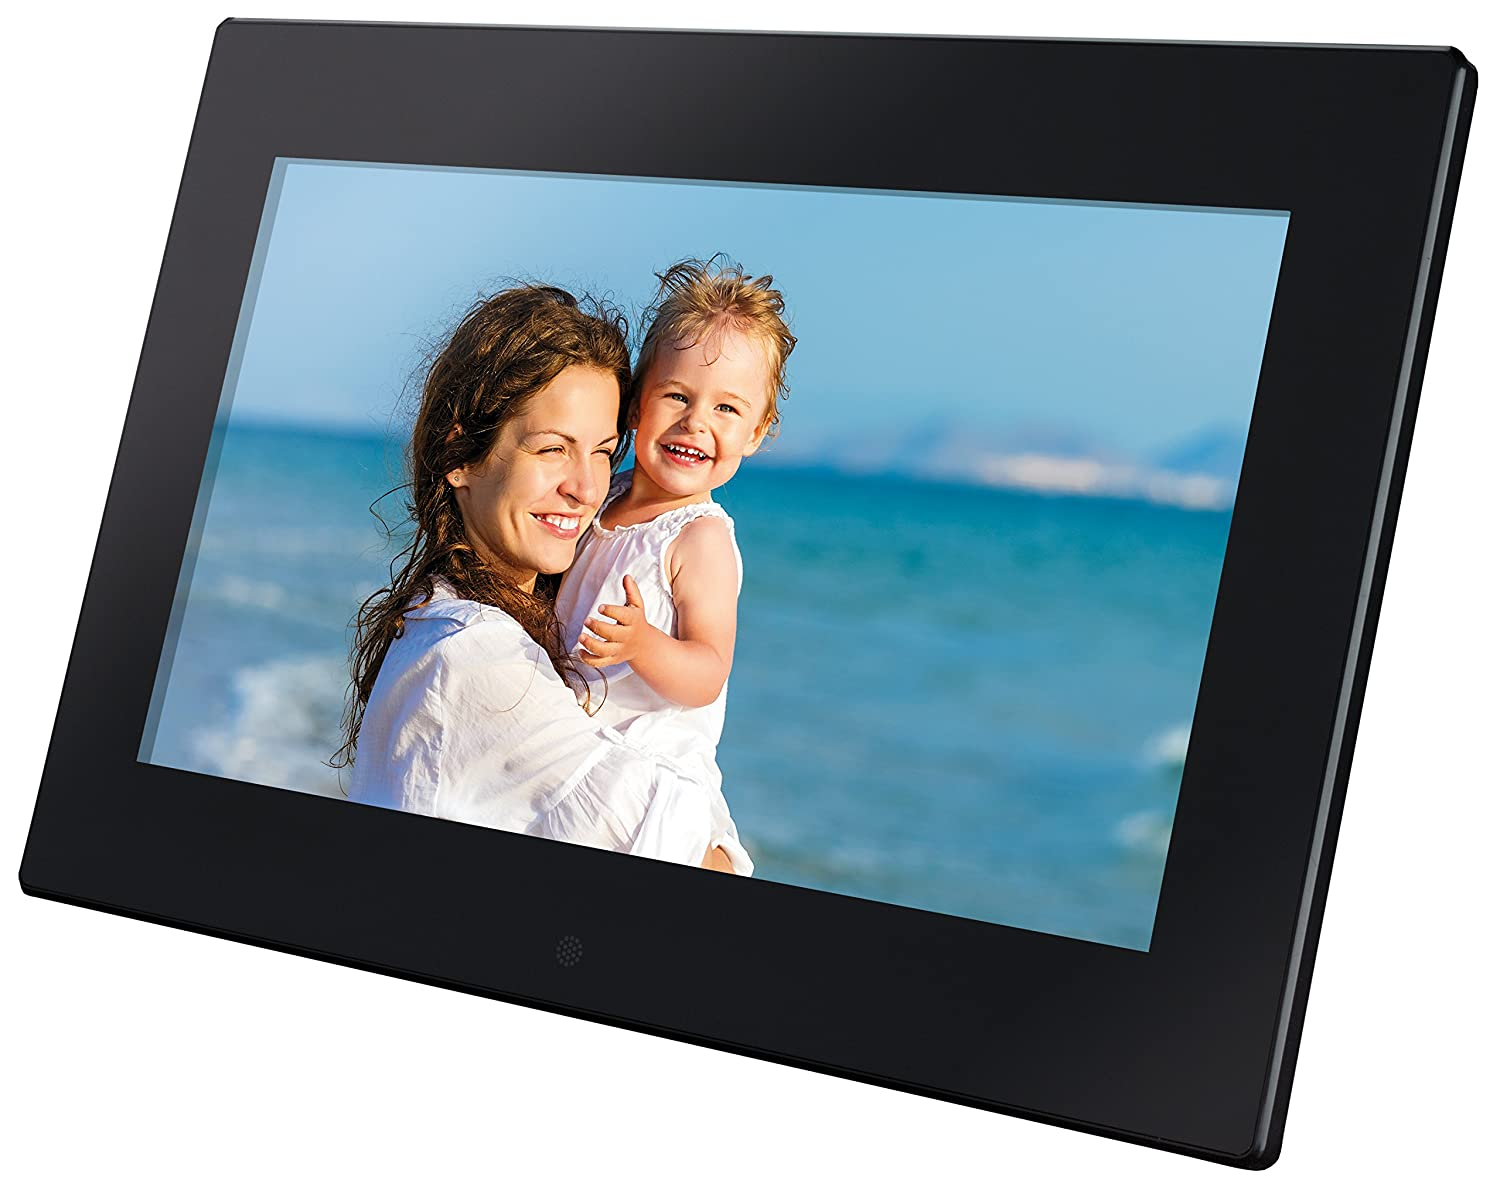 top 10 best digital photo frames buying guide 2016 2017 on flipboard